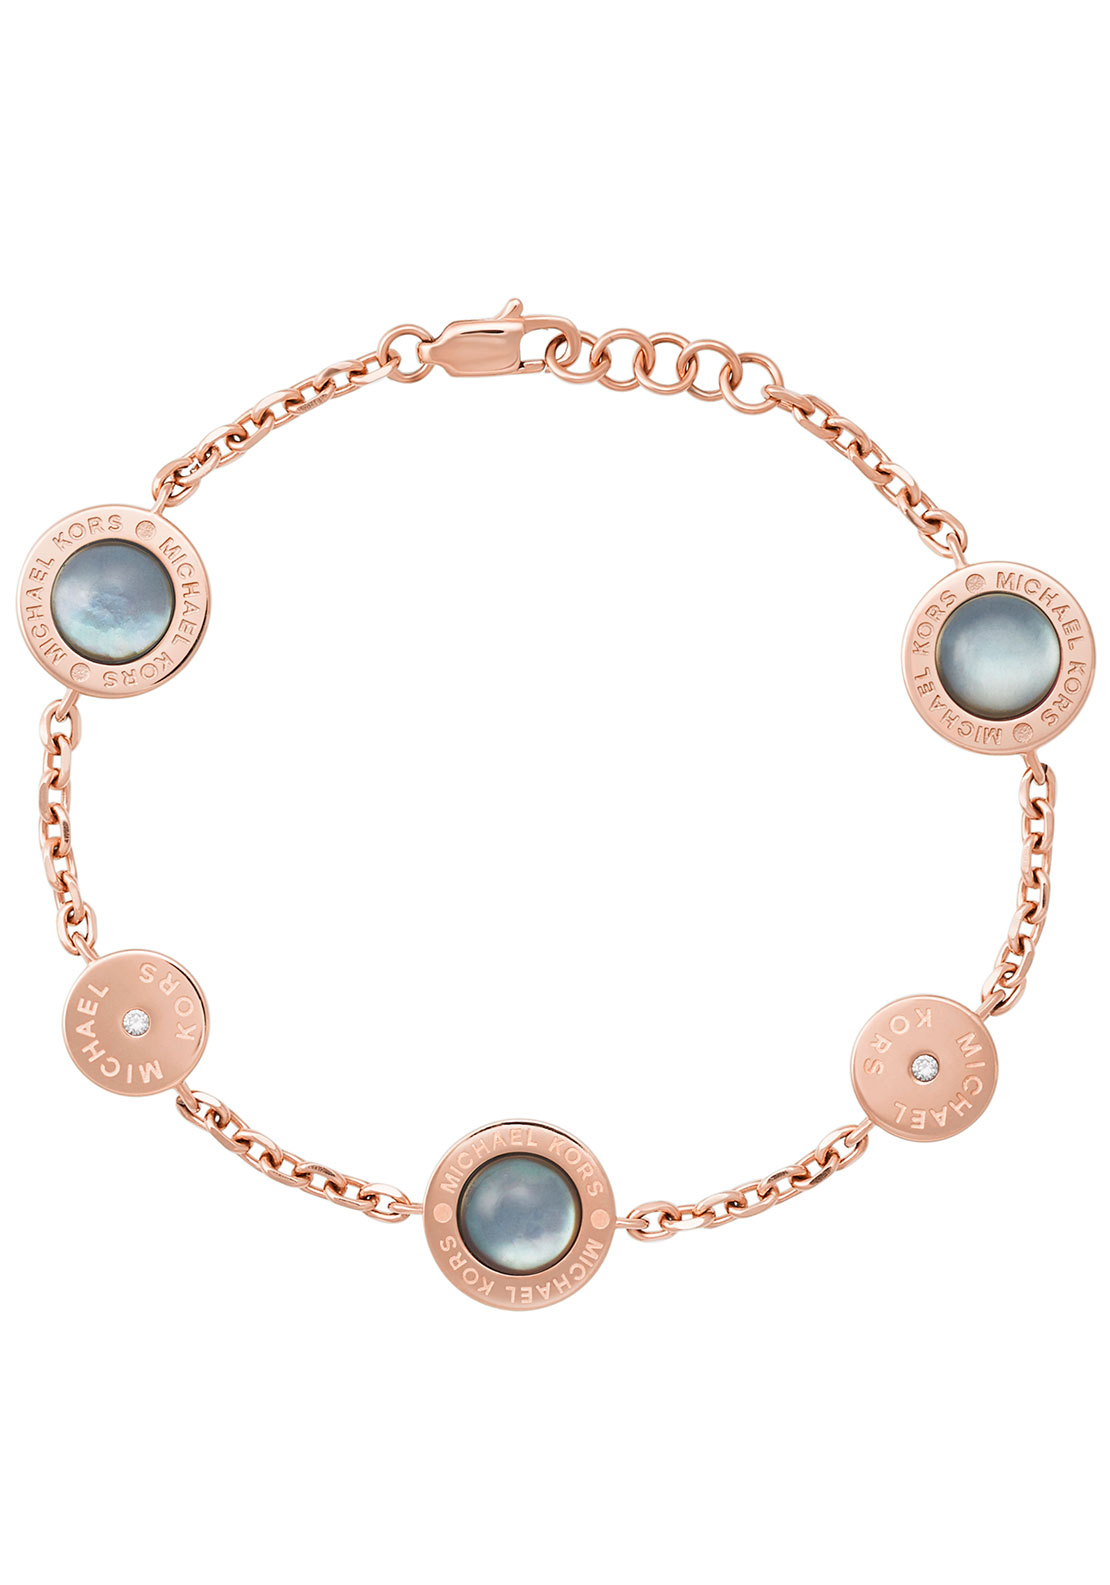 Michael Kors Logo Stone Set Bracelet, Rose Gold